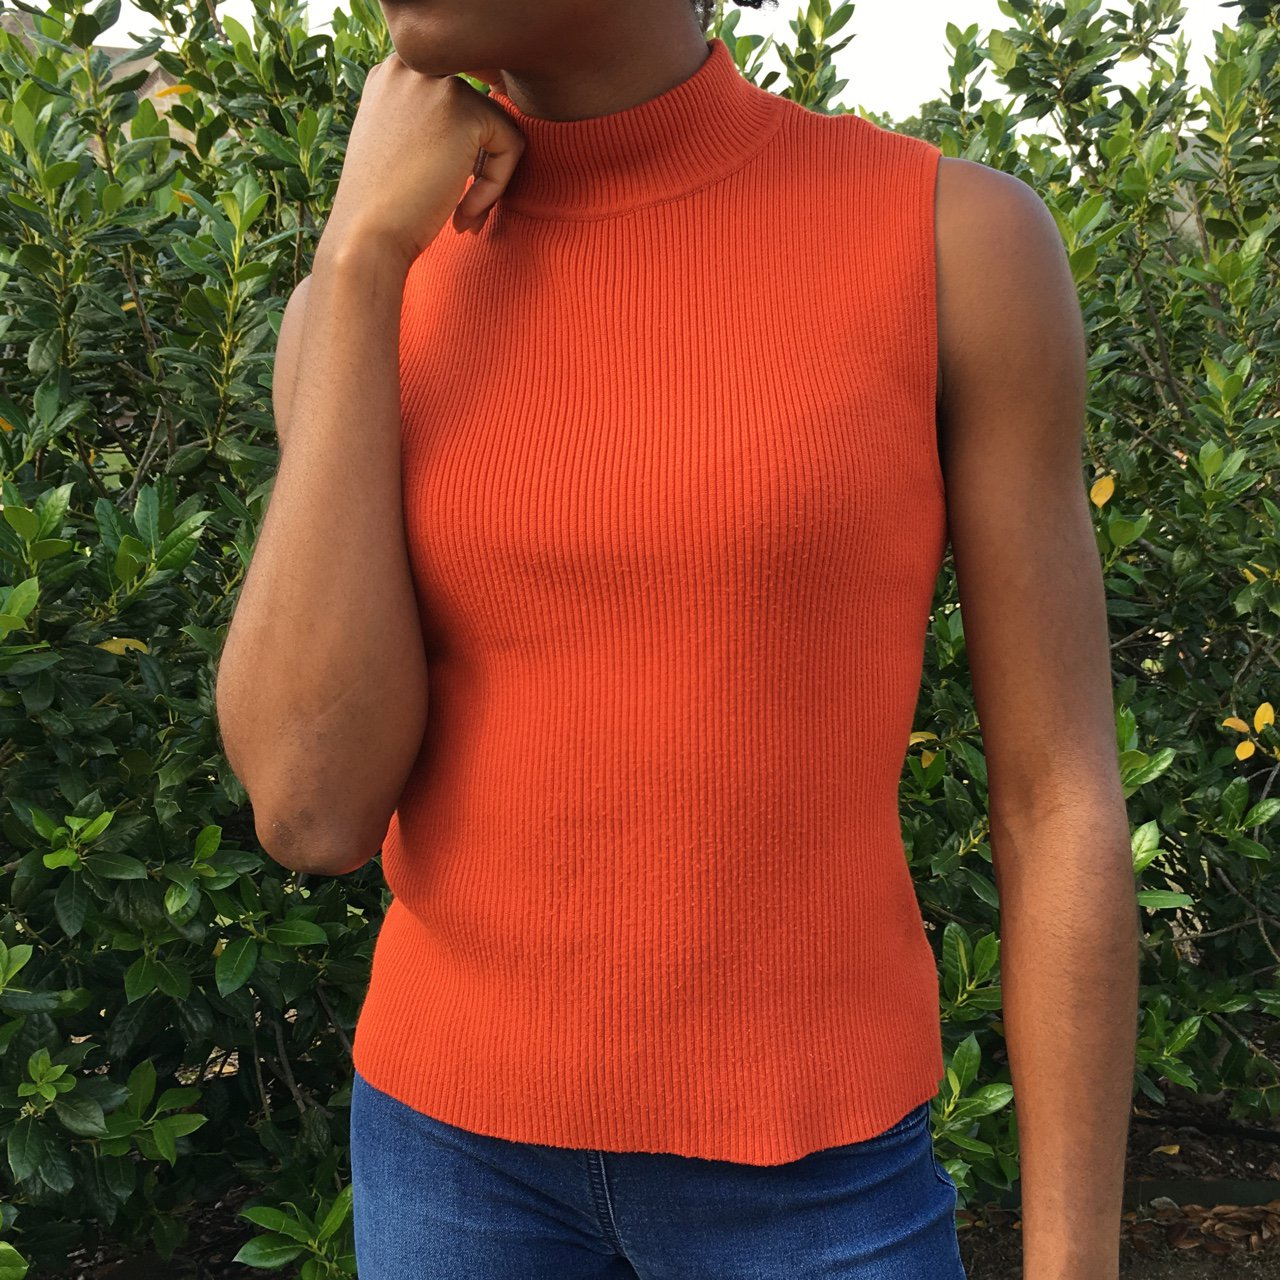 Ribbed burnt orange  turtleneck. Size  M(10-12) I typically - Depop 2a8b634cf